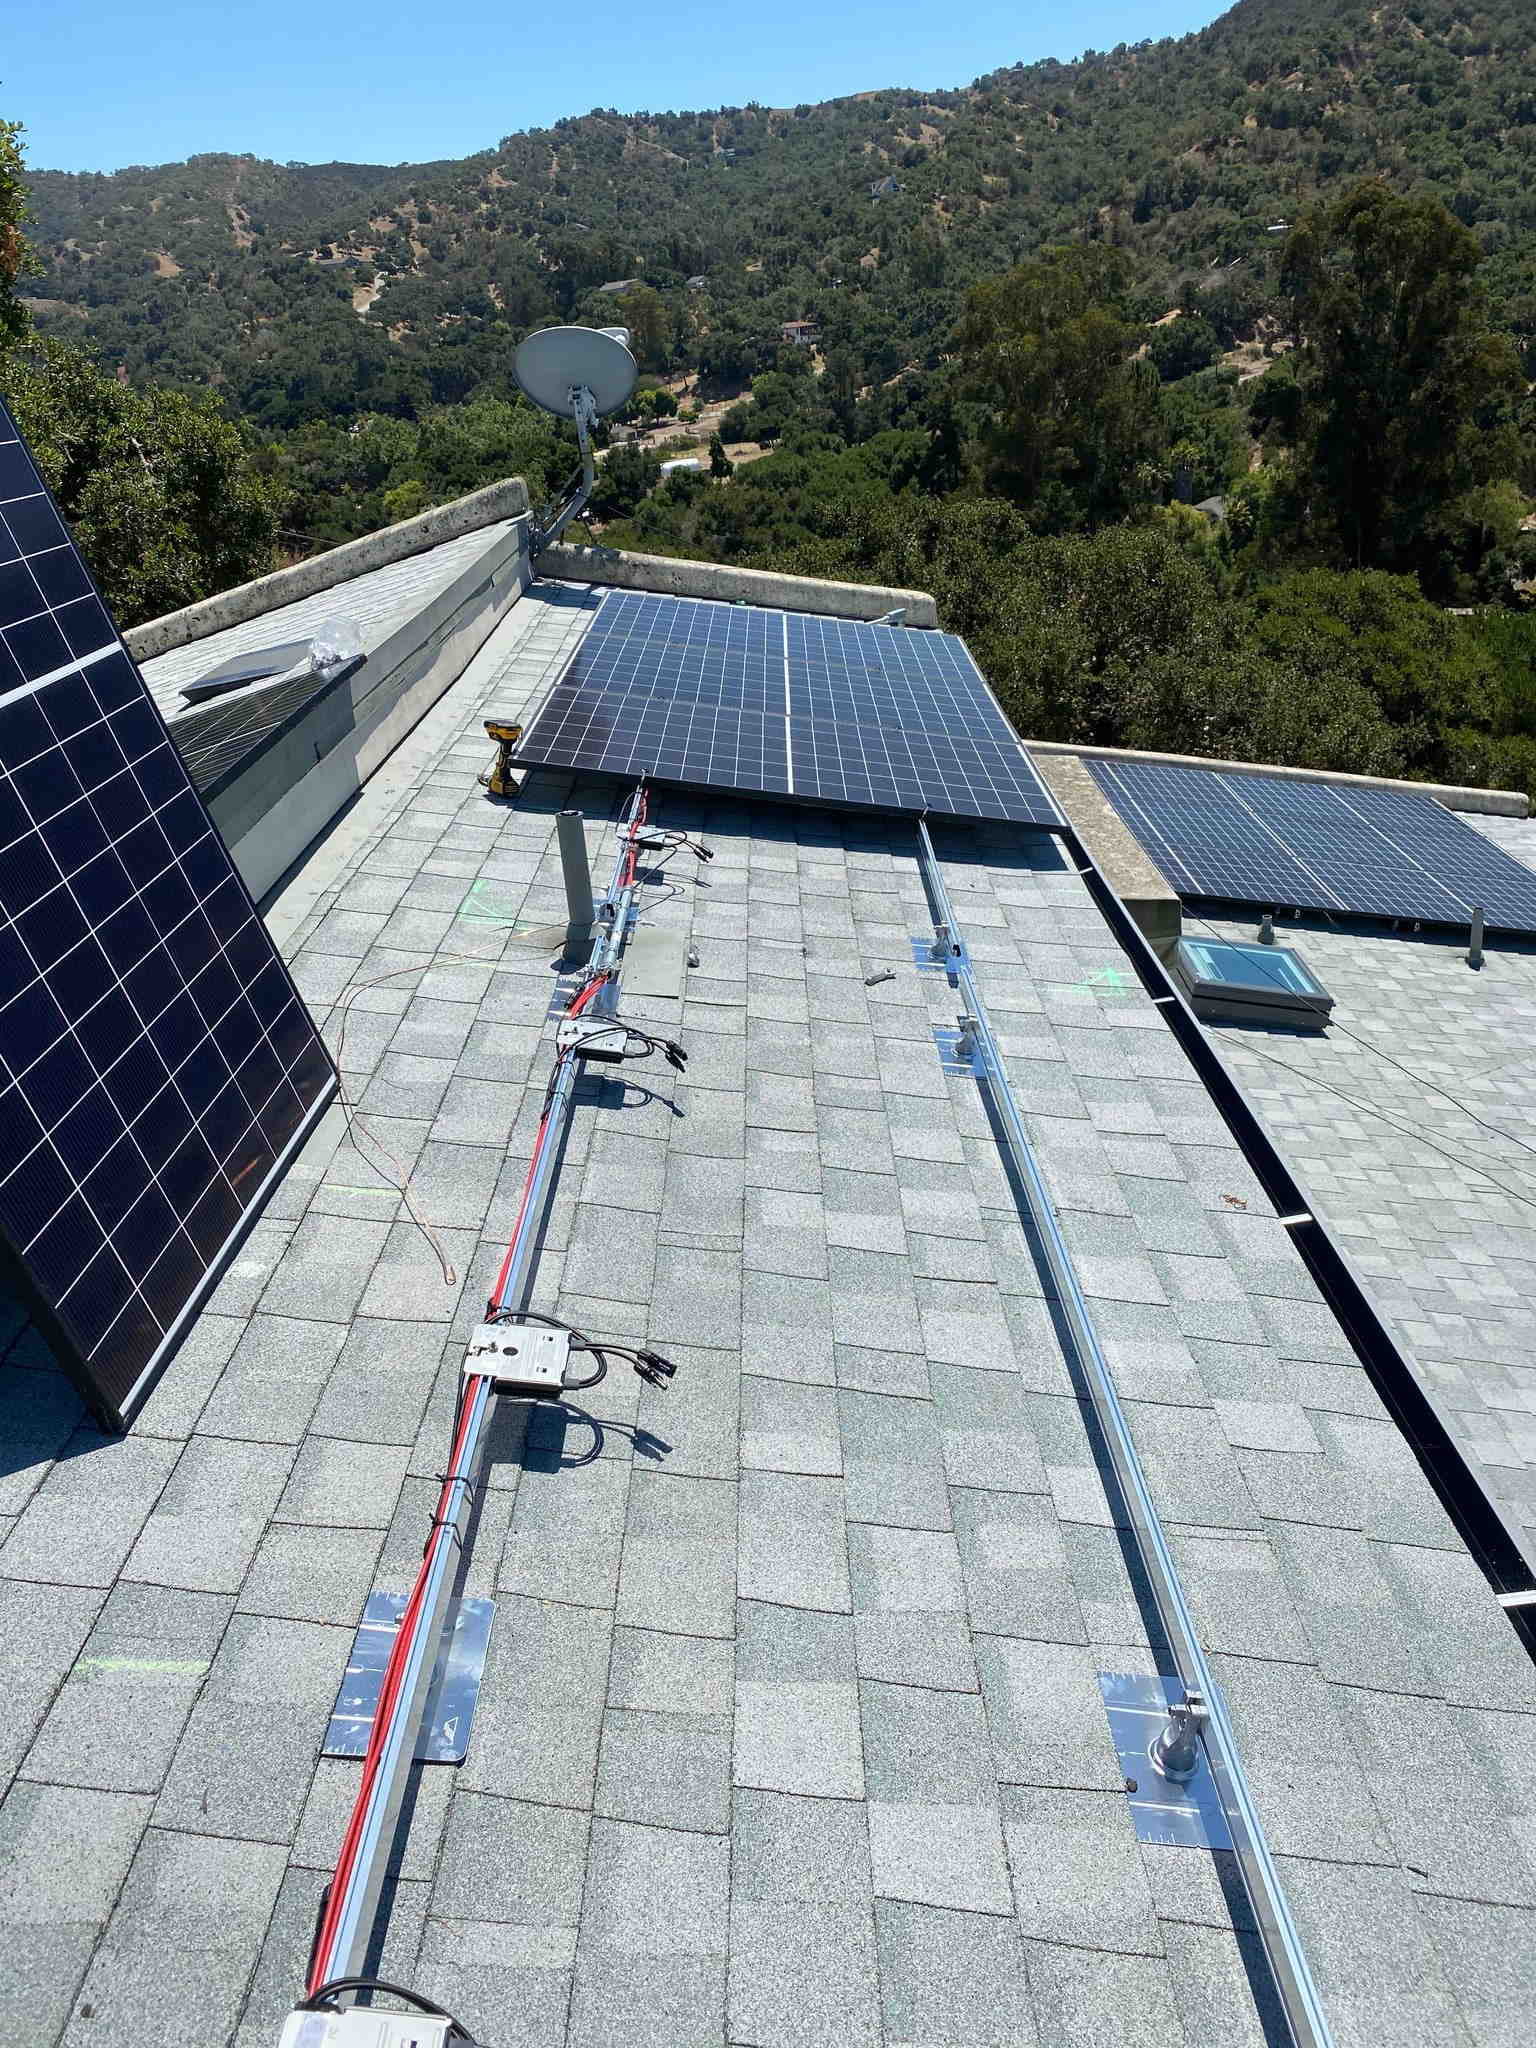 How much does residential solar installation cost?